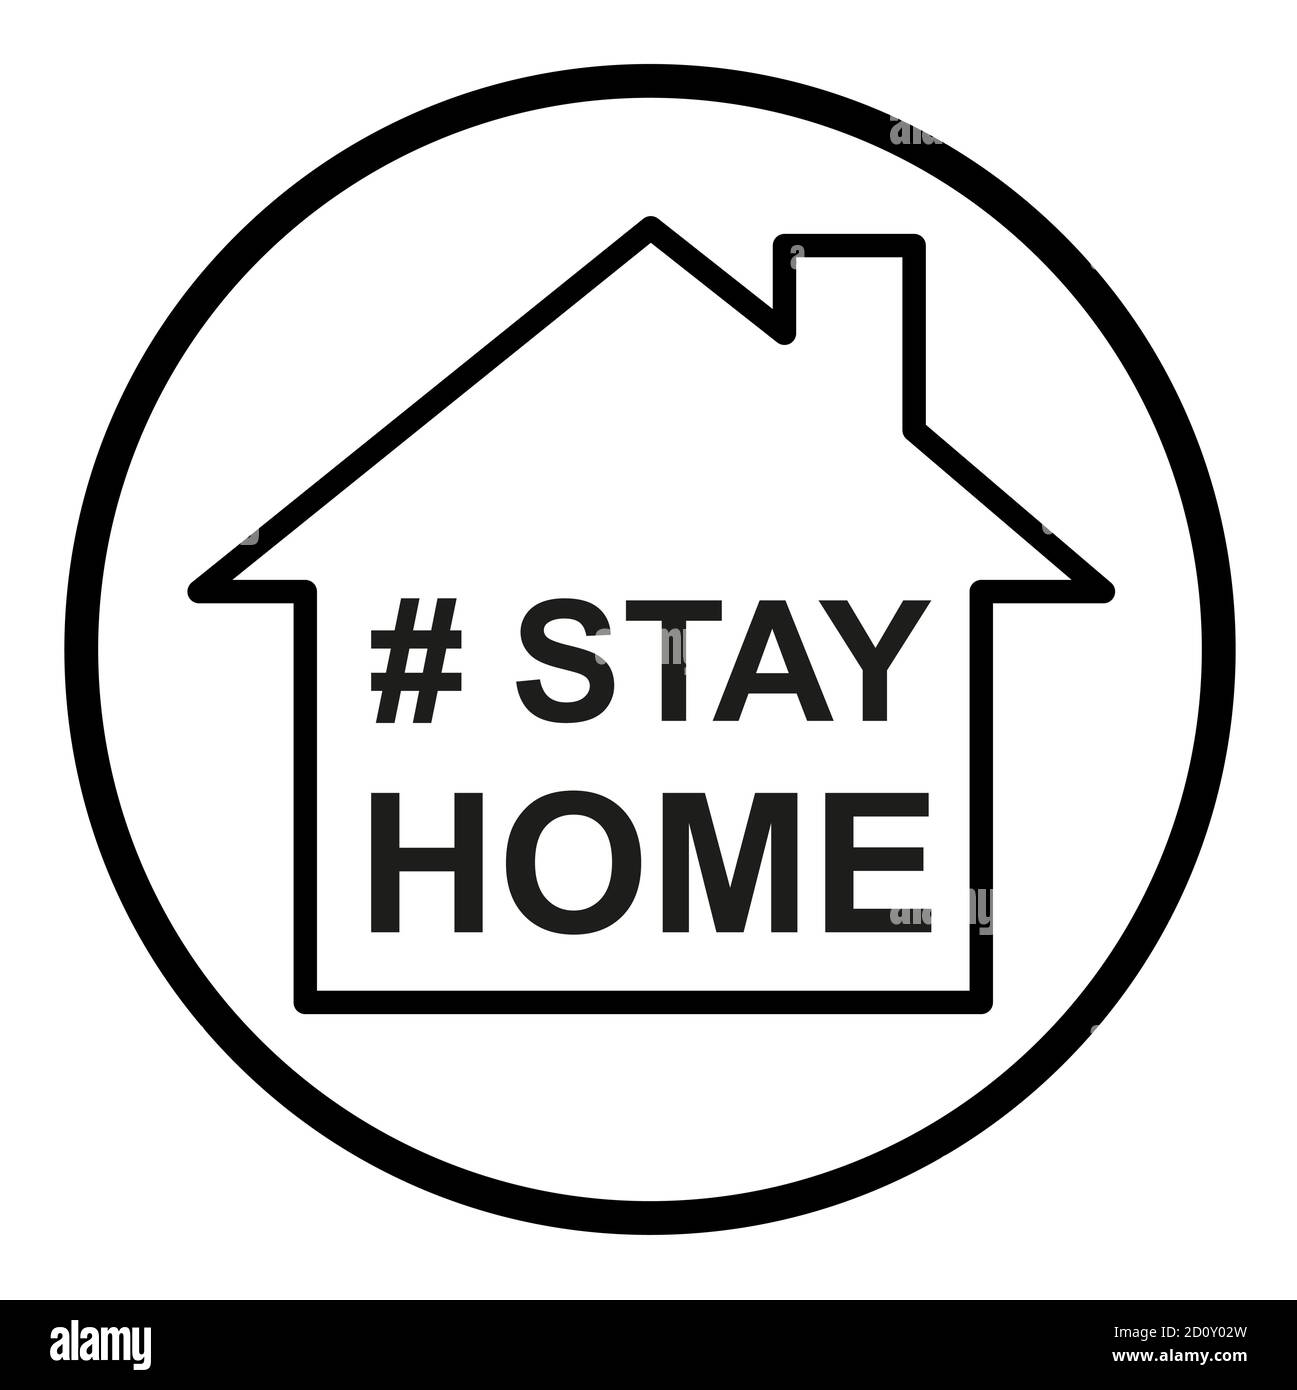 Stay home  icon, house symbol, quarantine covid virus vector illustration isolated on white background . Stock Vector